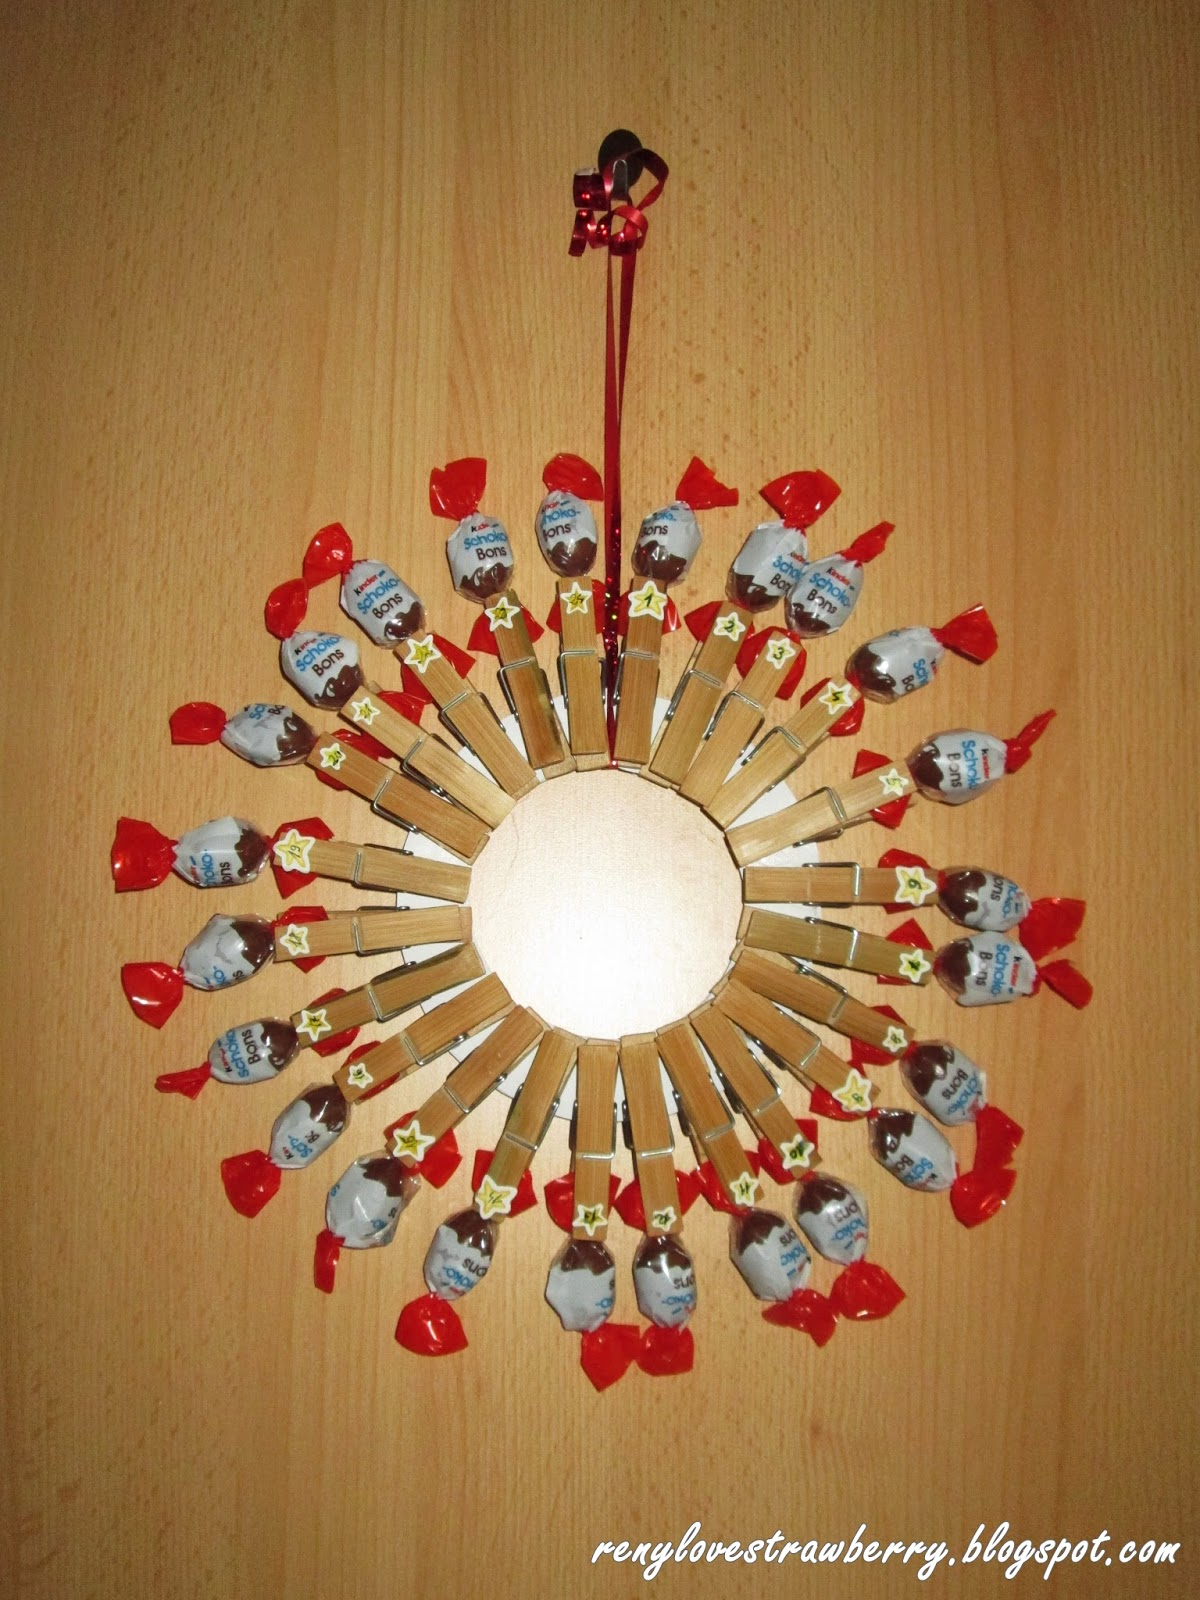 Diy Advent Calendar Wreath : Strawberry love by reny diy clothespins advent calendar